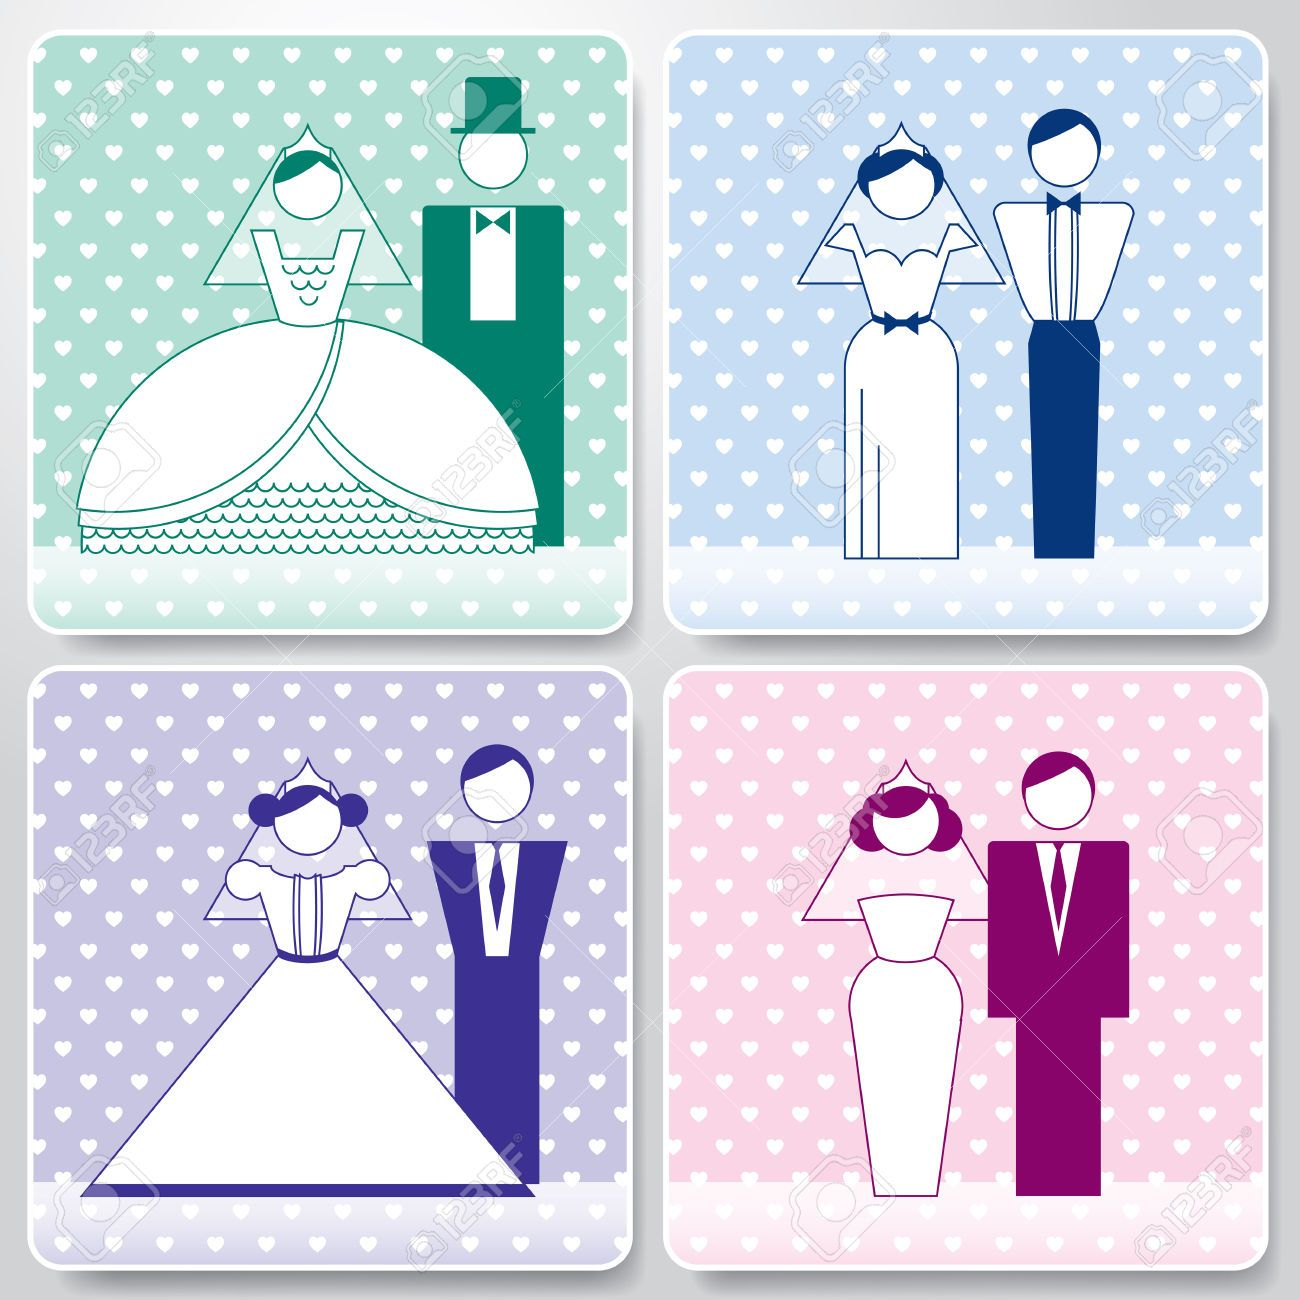 23498301-Wedding-Pastel-Icons-With-The-Bride-And-Groom-Vector-Illustration-Vector-can-be-scaled-to-any-size-w-Stock-Vector.jpg (1300×1300)